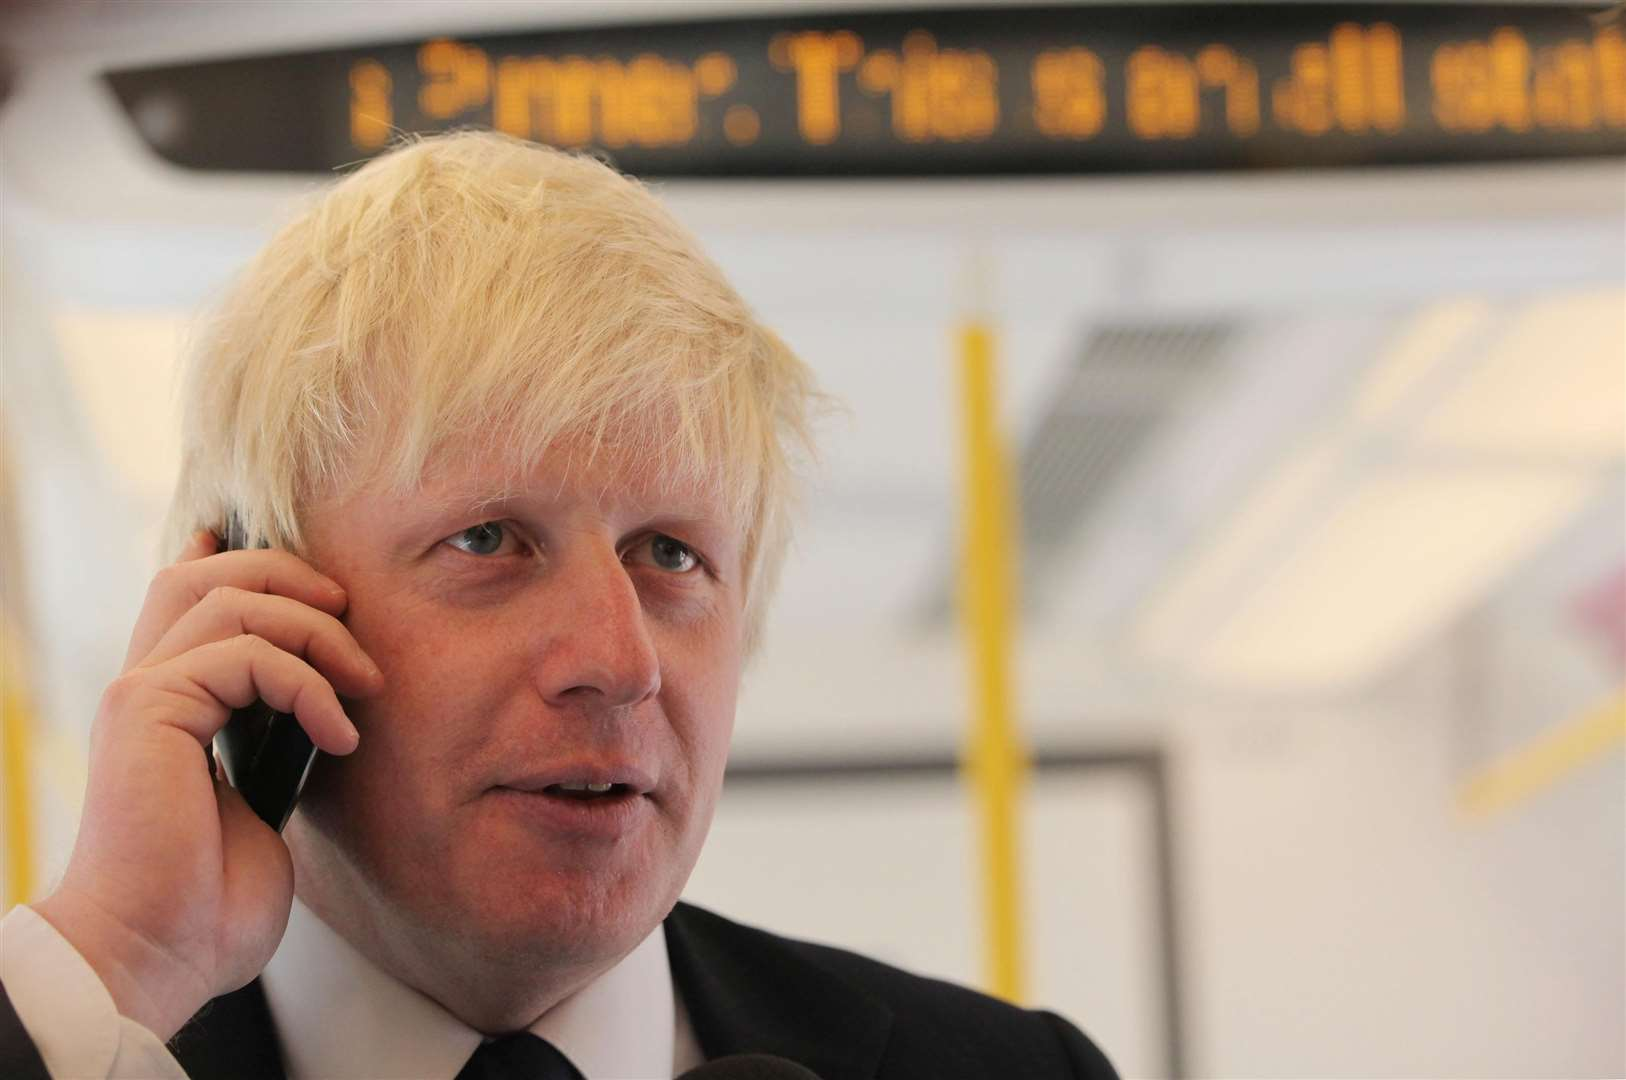 Boris Johnson's phone number 'available online for 15 years'